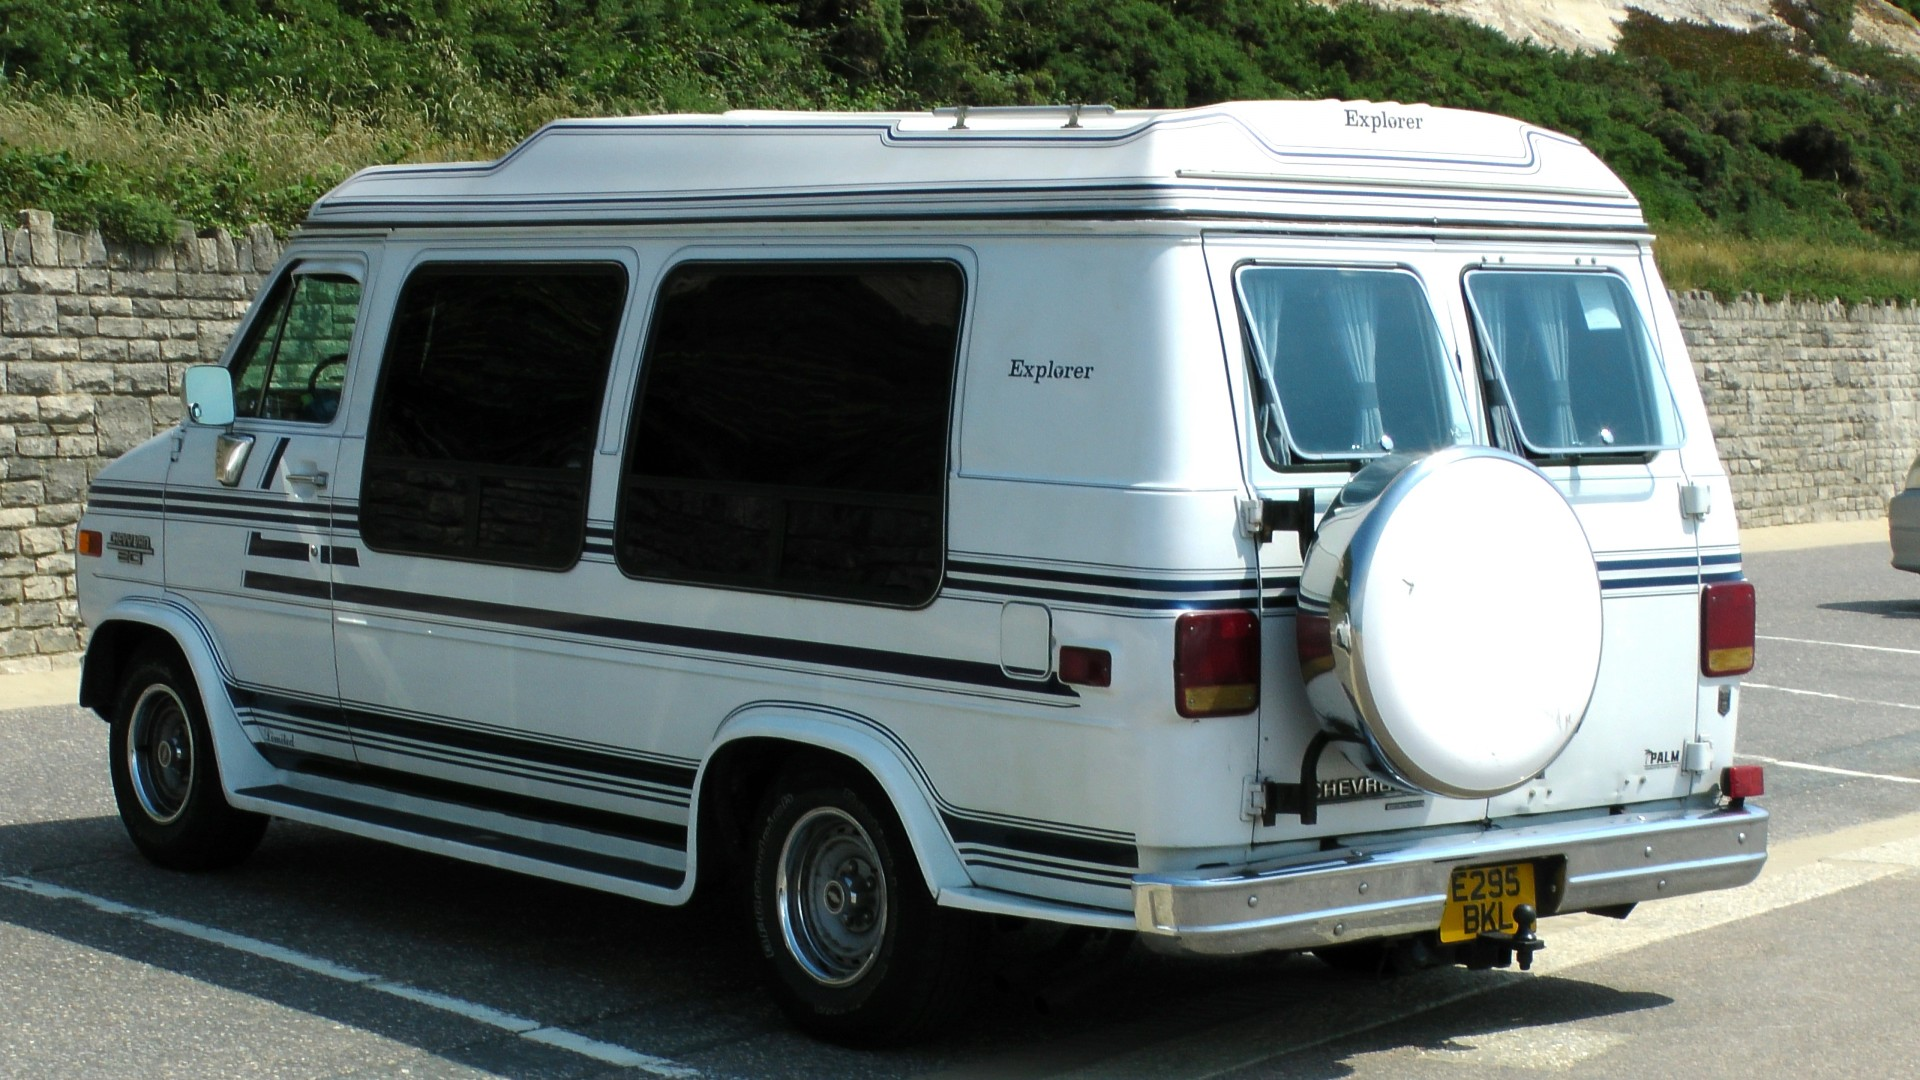 This is the sort of van I am looking for.